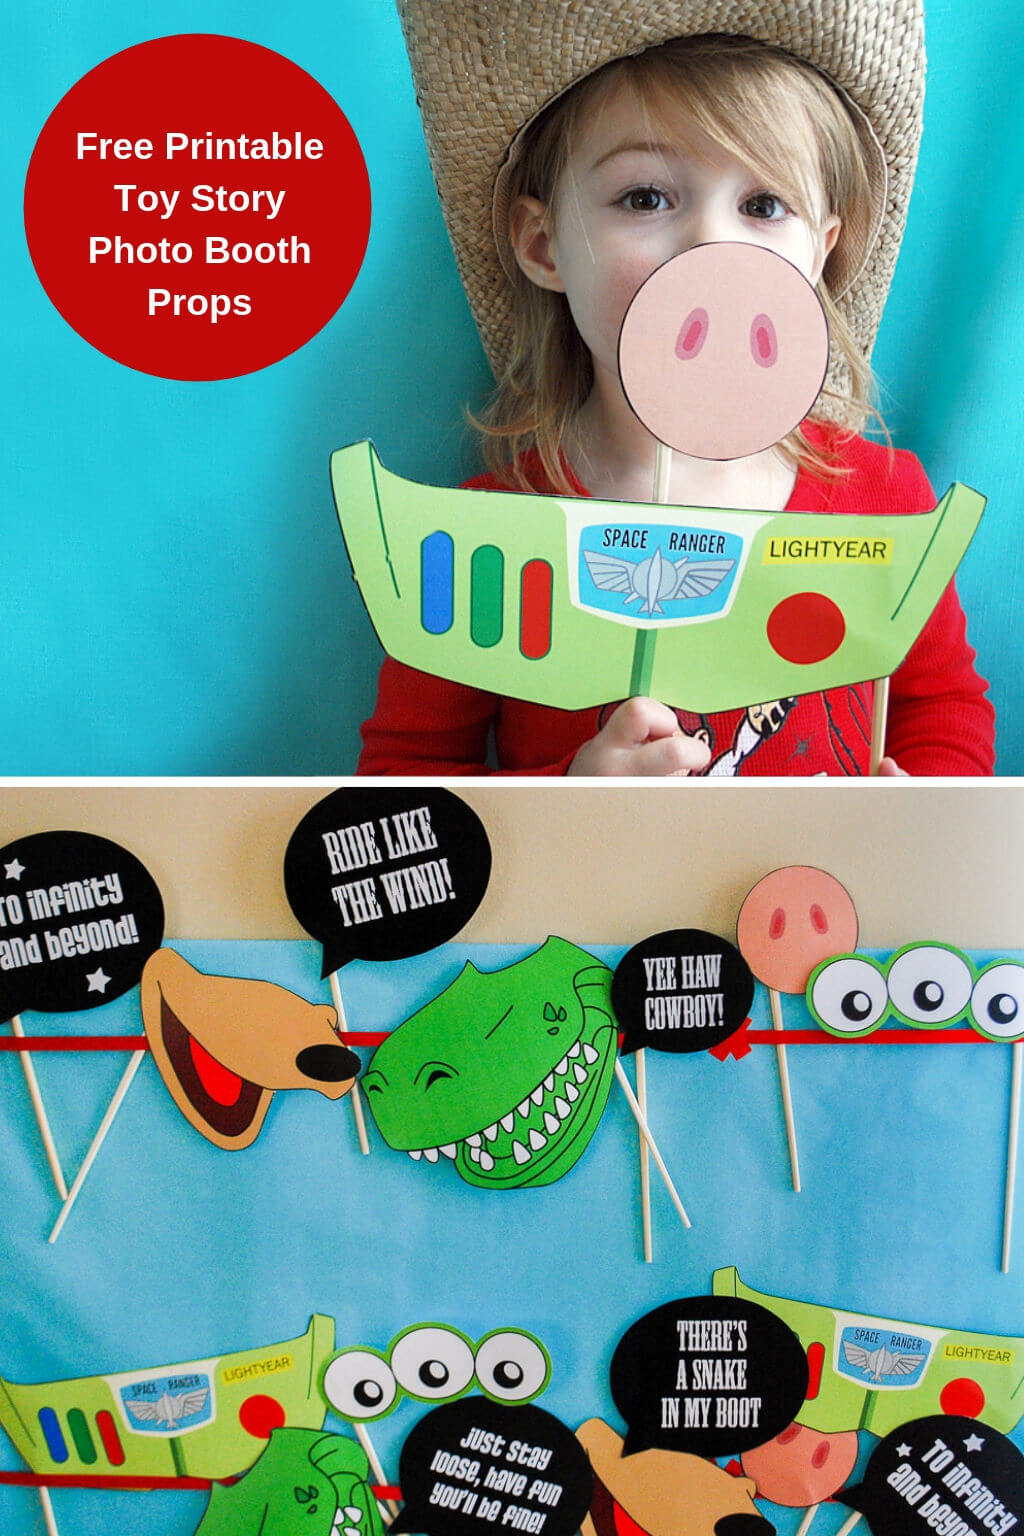 Toy Story Photo Booth Props Free Printable